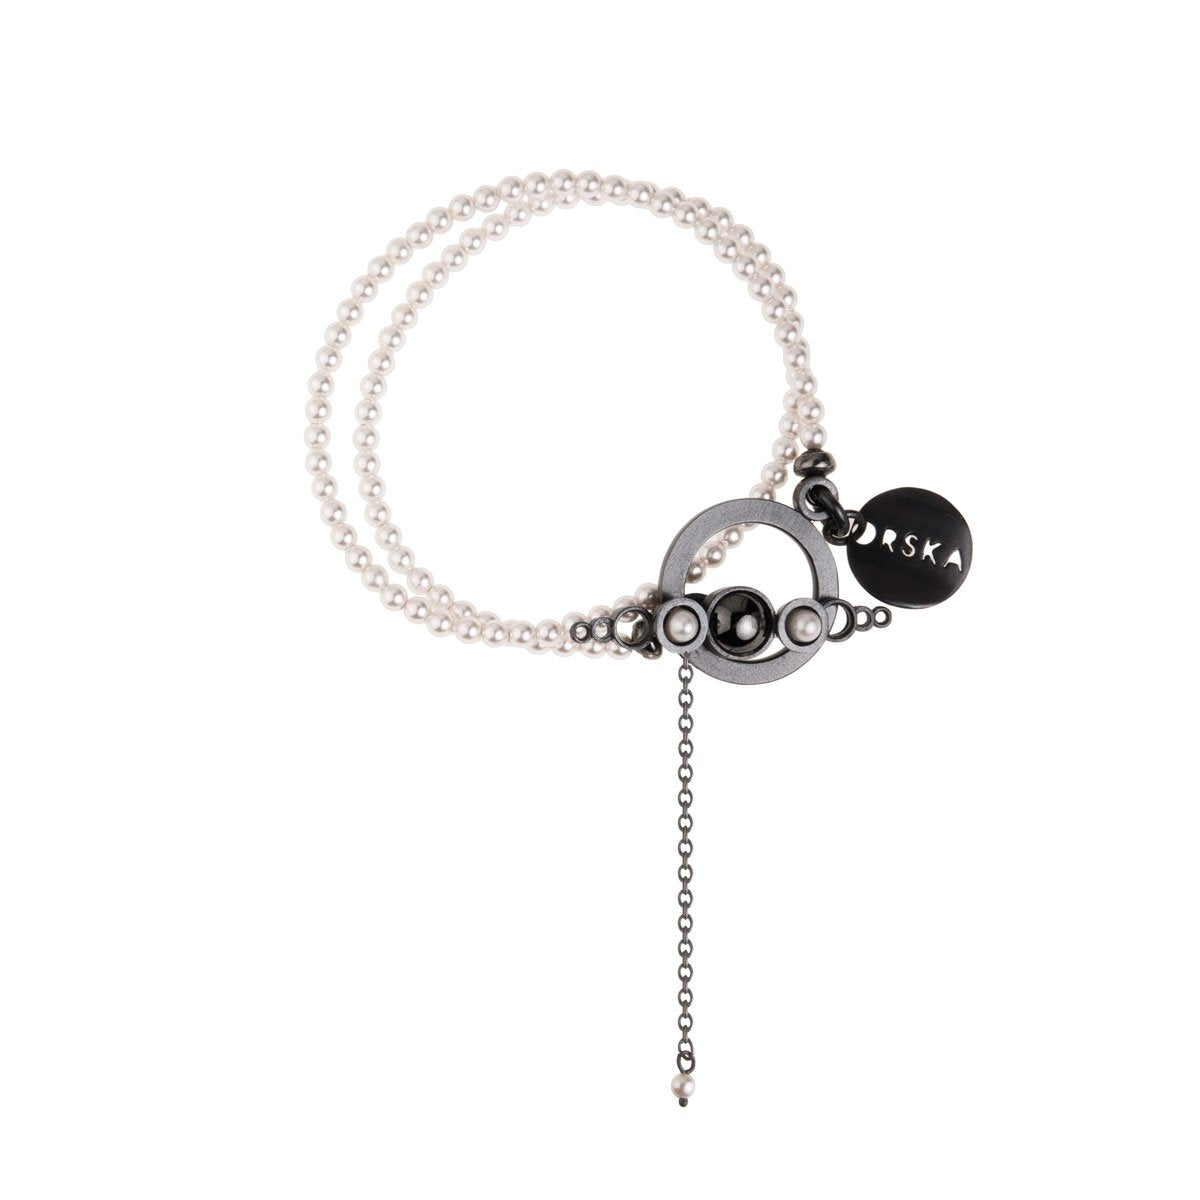 Bracelet from Soda collection - SA38P